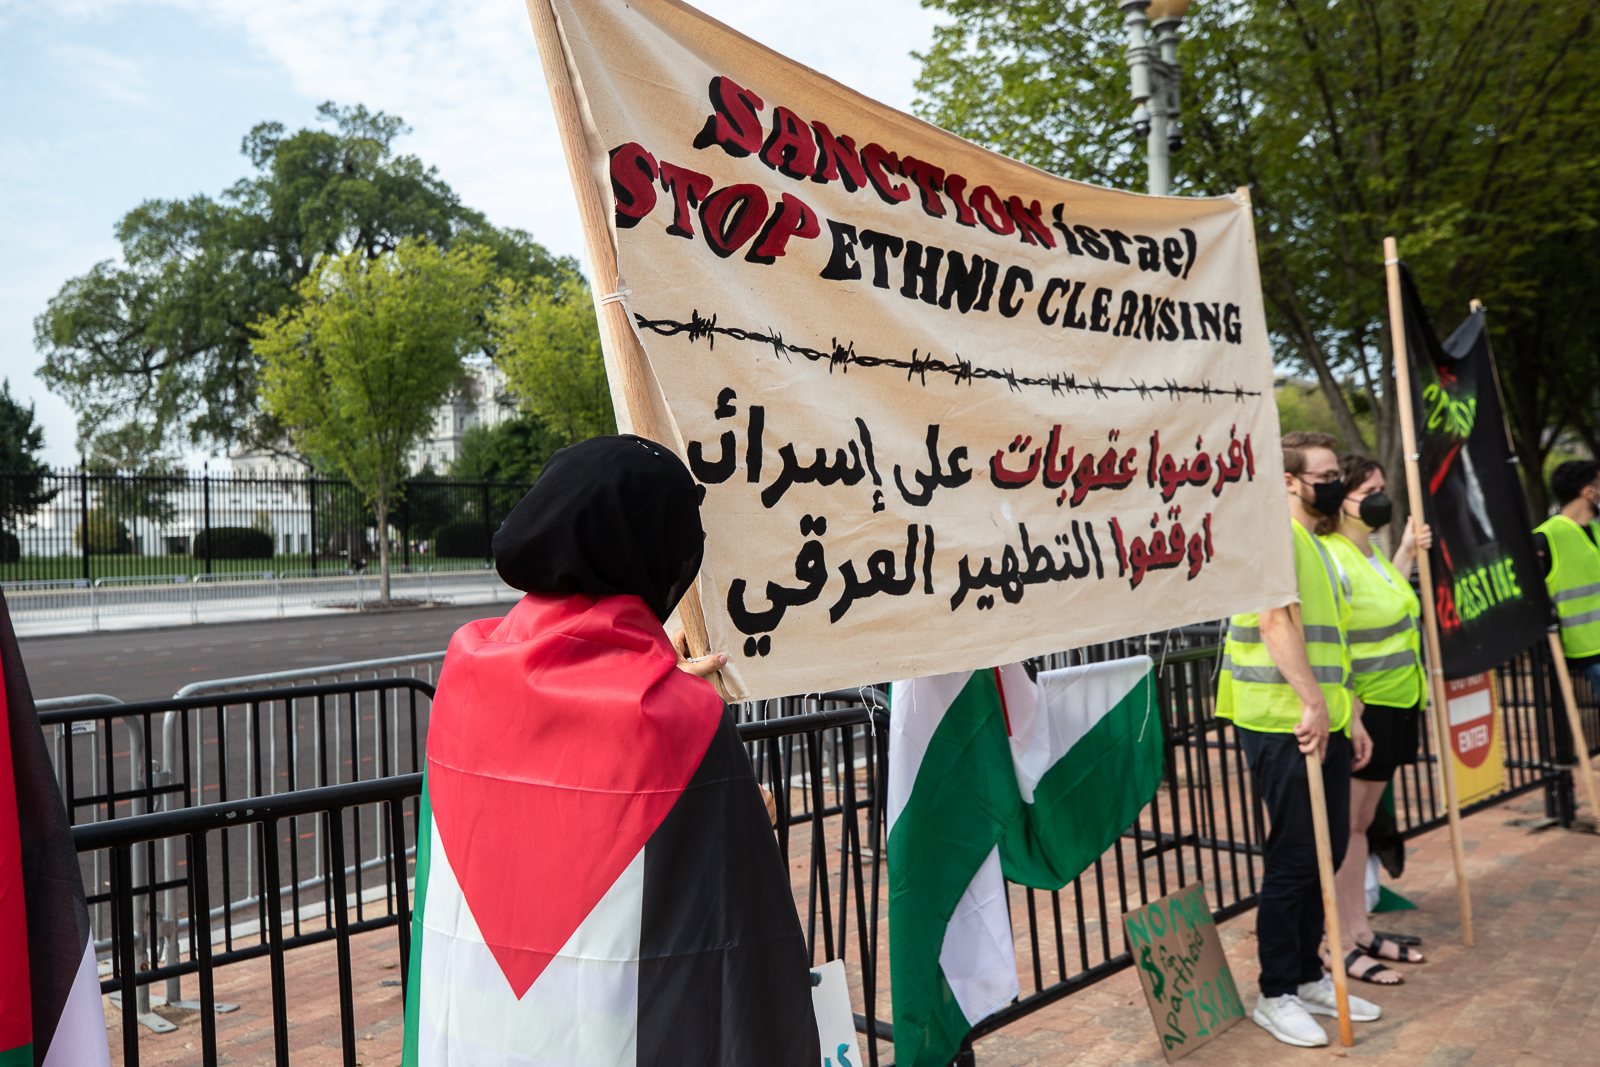 Demonstrators gathered in front of the White House to protest President Joe Biden's meeting with Israeli Prime Minister Naftali Bennett in Washington, D.C. on August 26, 2021. (Kaylee Greenlee - Daily Caller News Foundation)